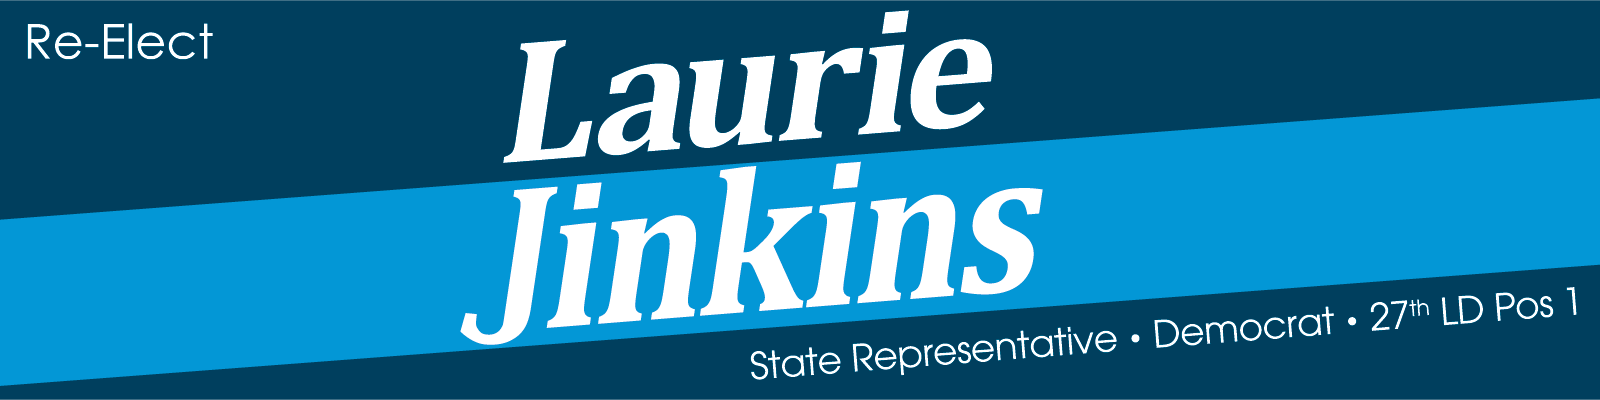 Friends of Laurie Jinkins: 2020